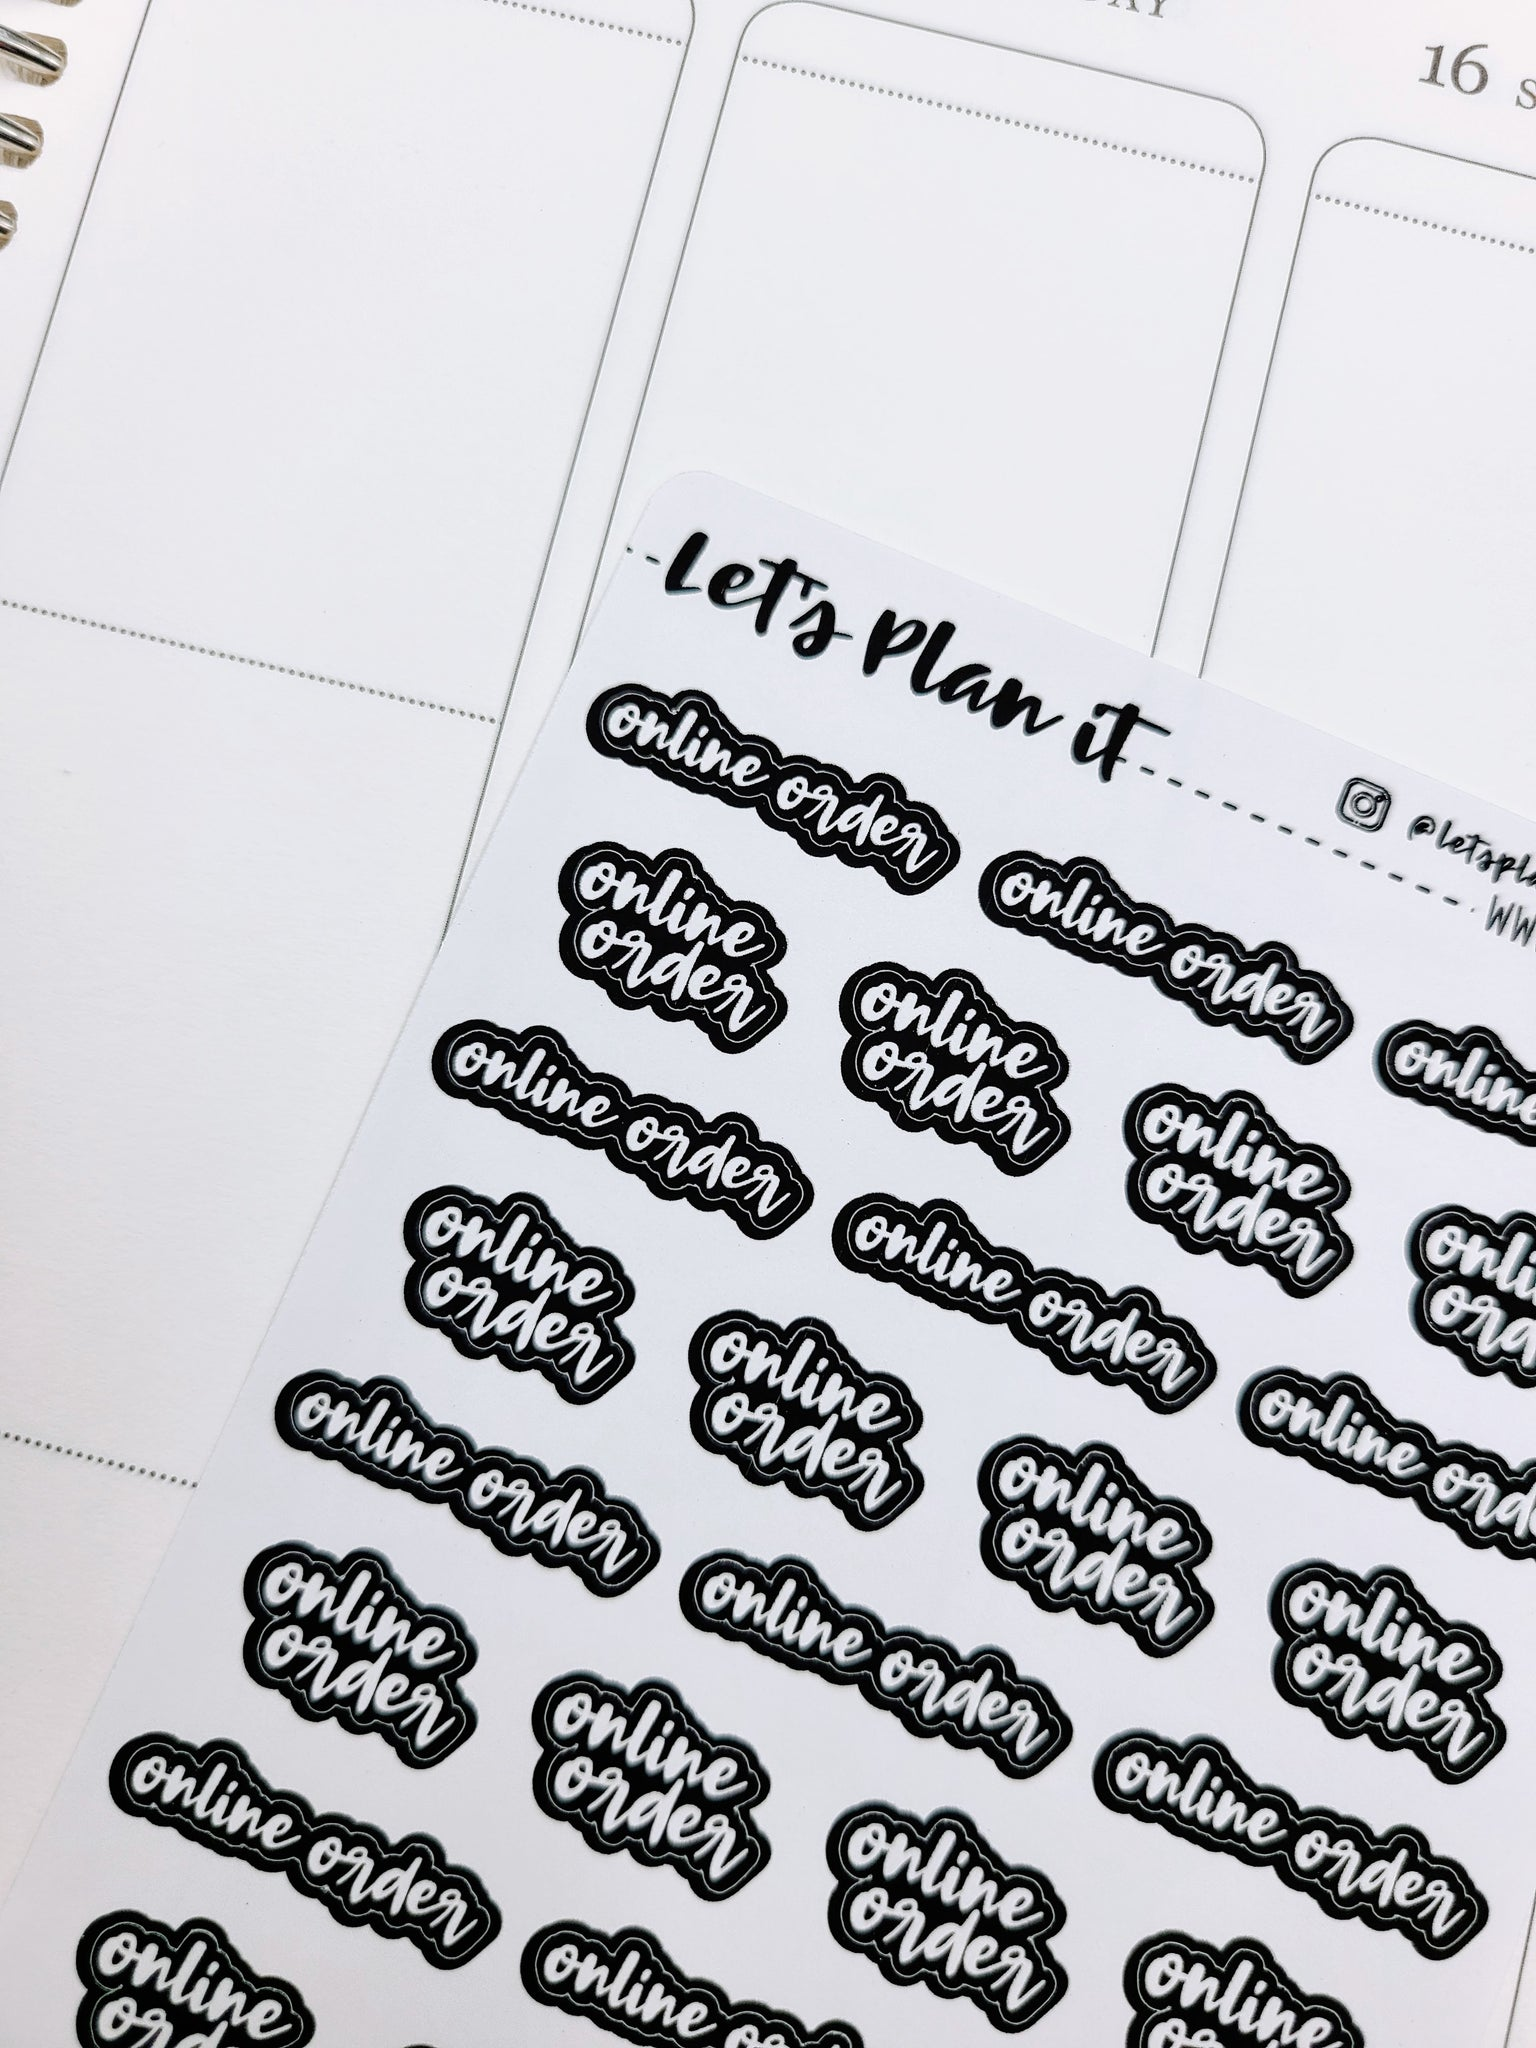 Online order | Monochrome blackout stickers